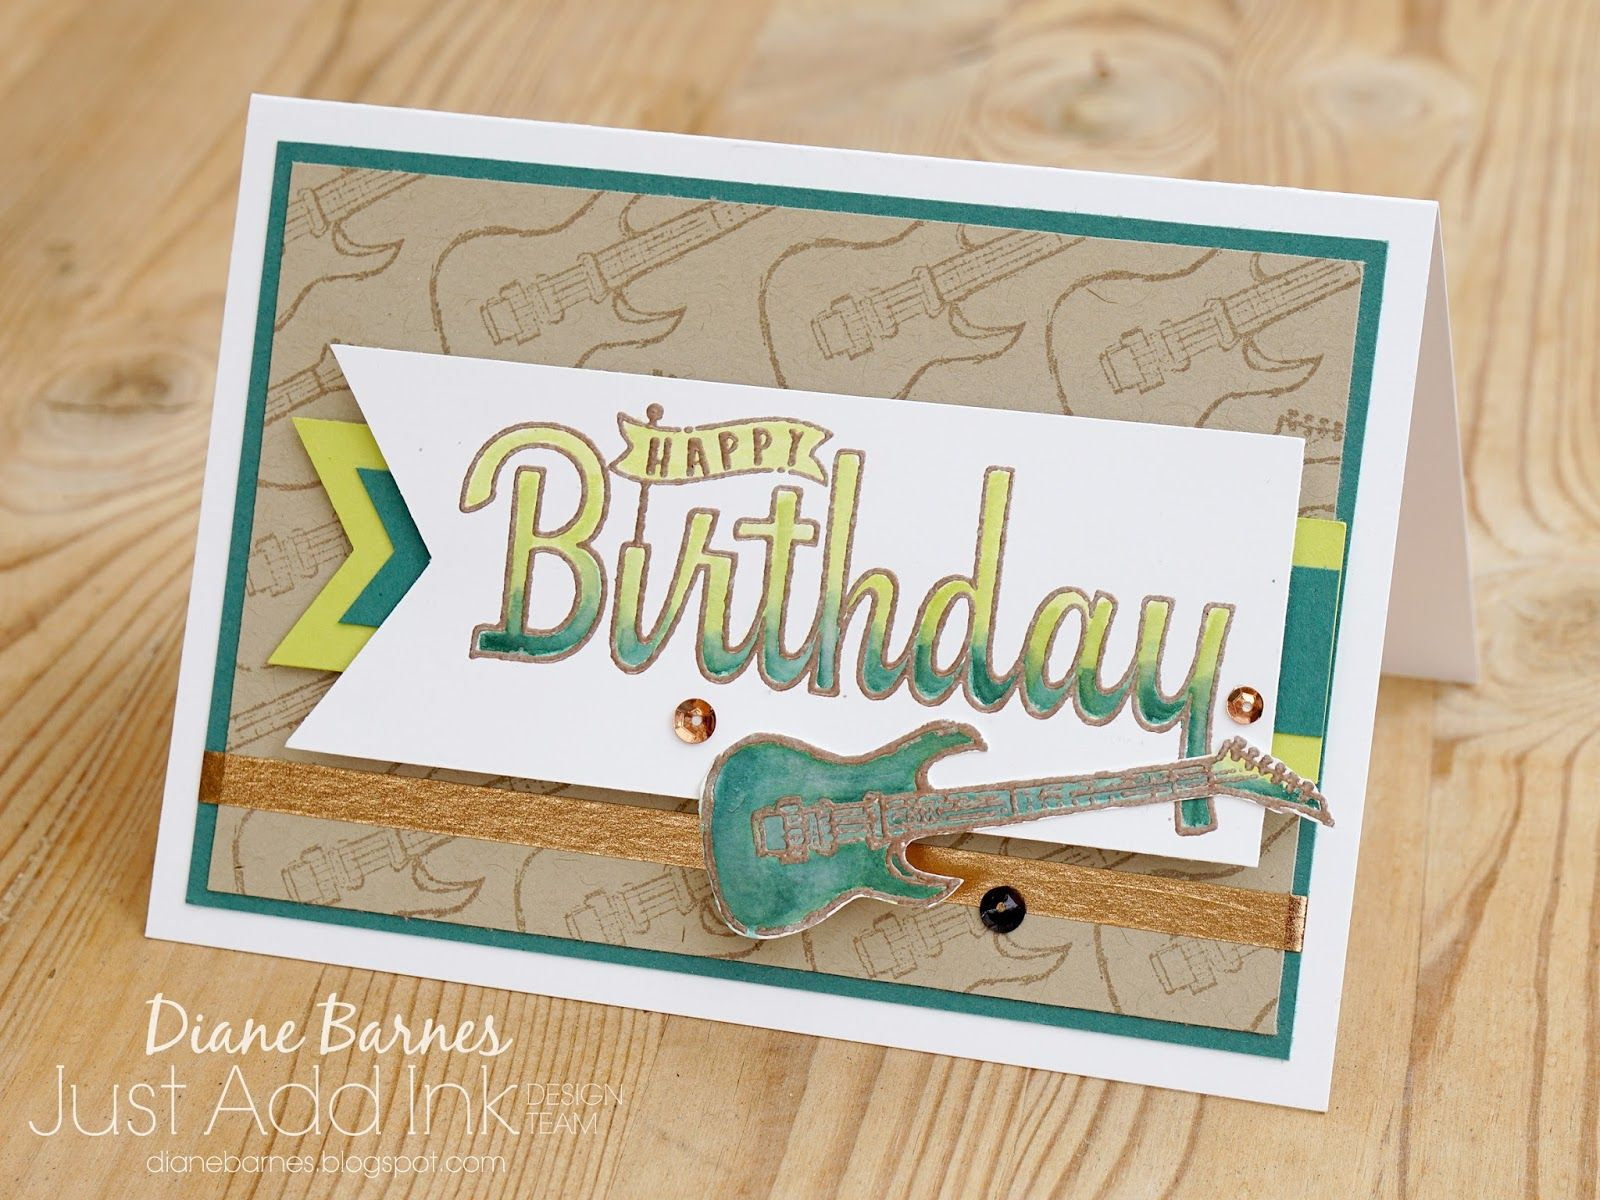 Handmade Masculine Card For Teens Or Adults Using Stampin Up Birthday Wishes You Stamp Set And Epic Celebrations Free Sale A Bration